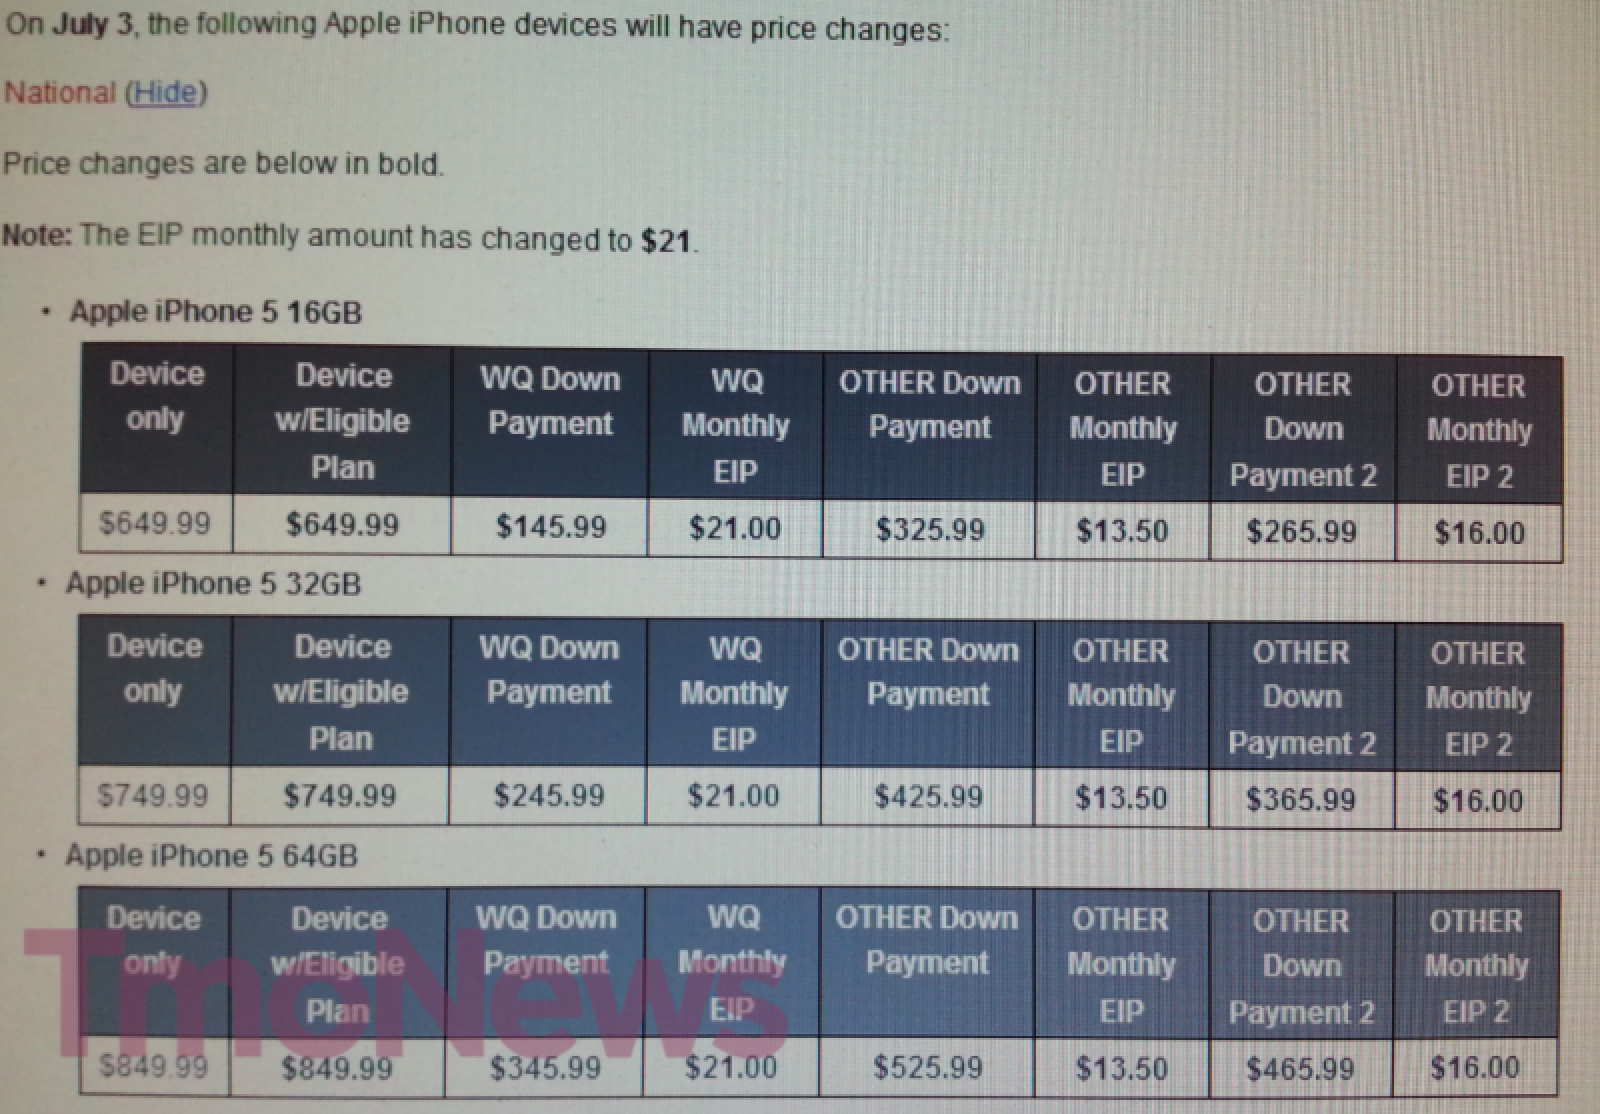 T Mobile Drops IPhone Down Payment Price By 4 Increases Monthly 1